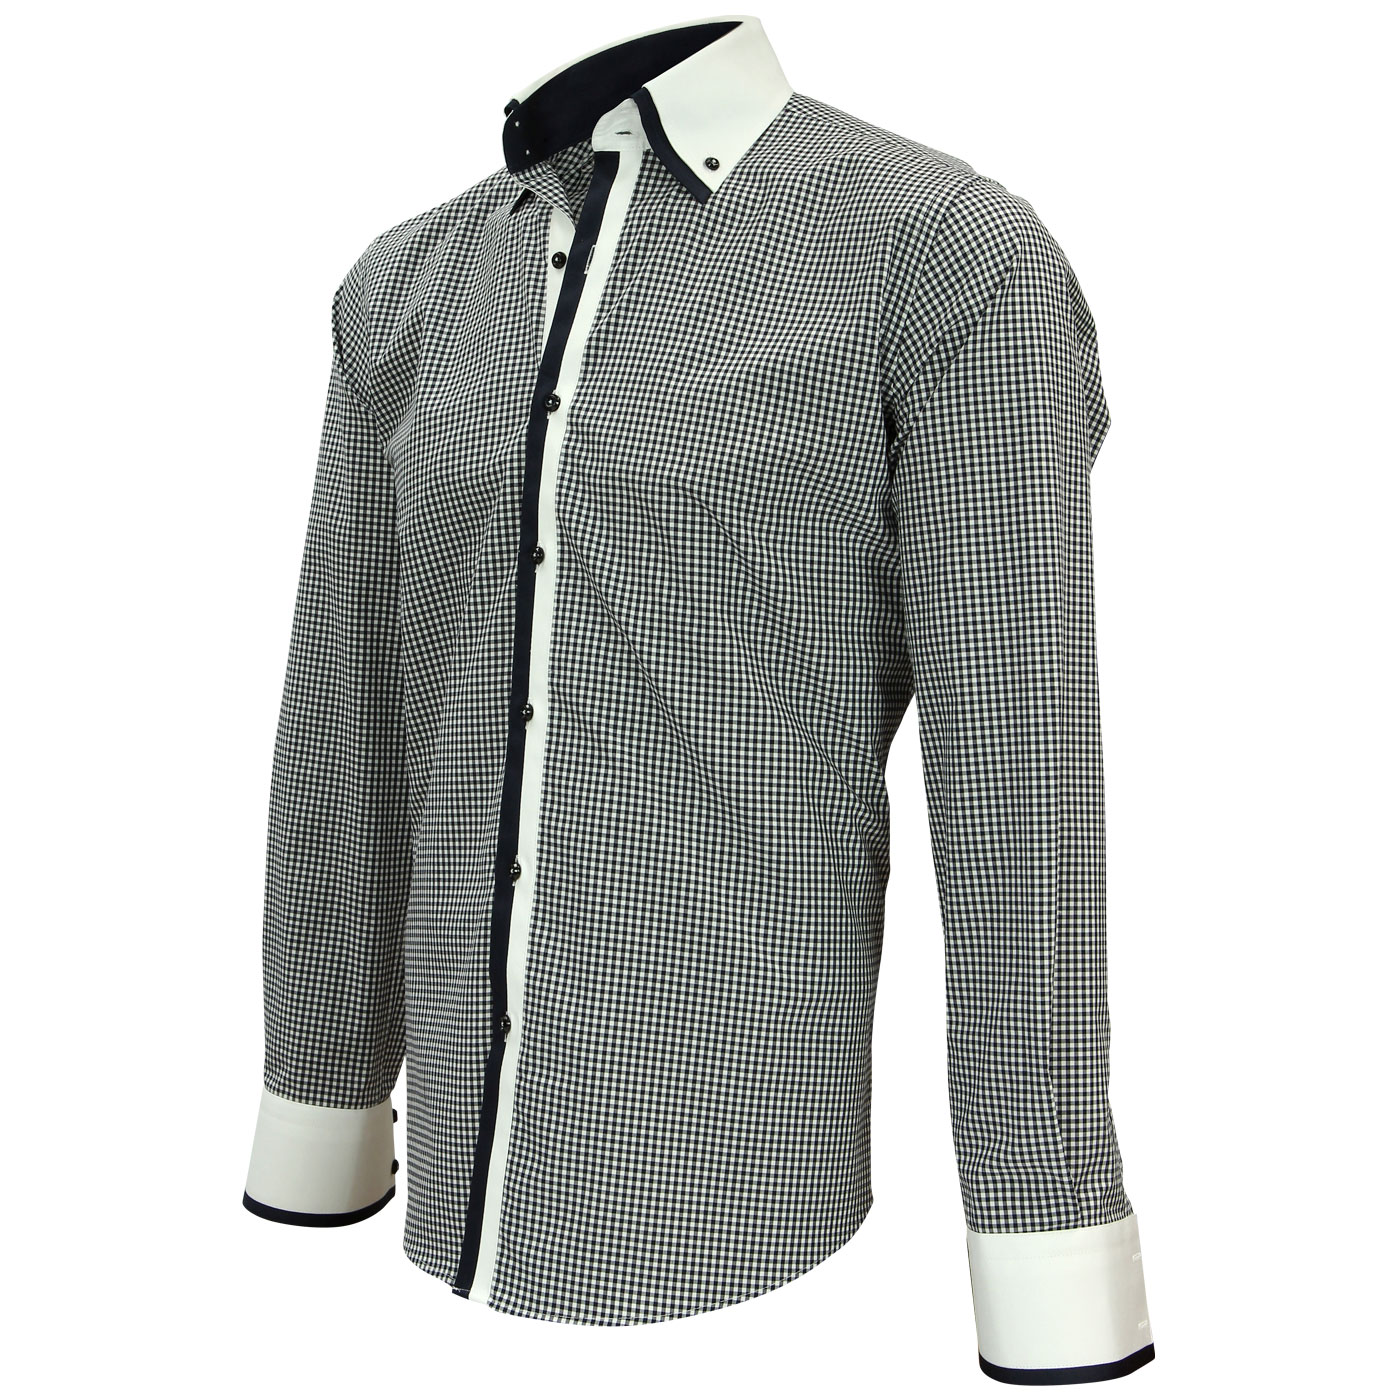 Trendy shirt with white collar